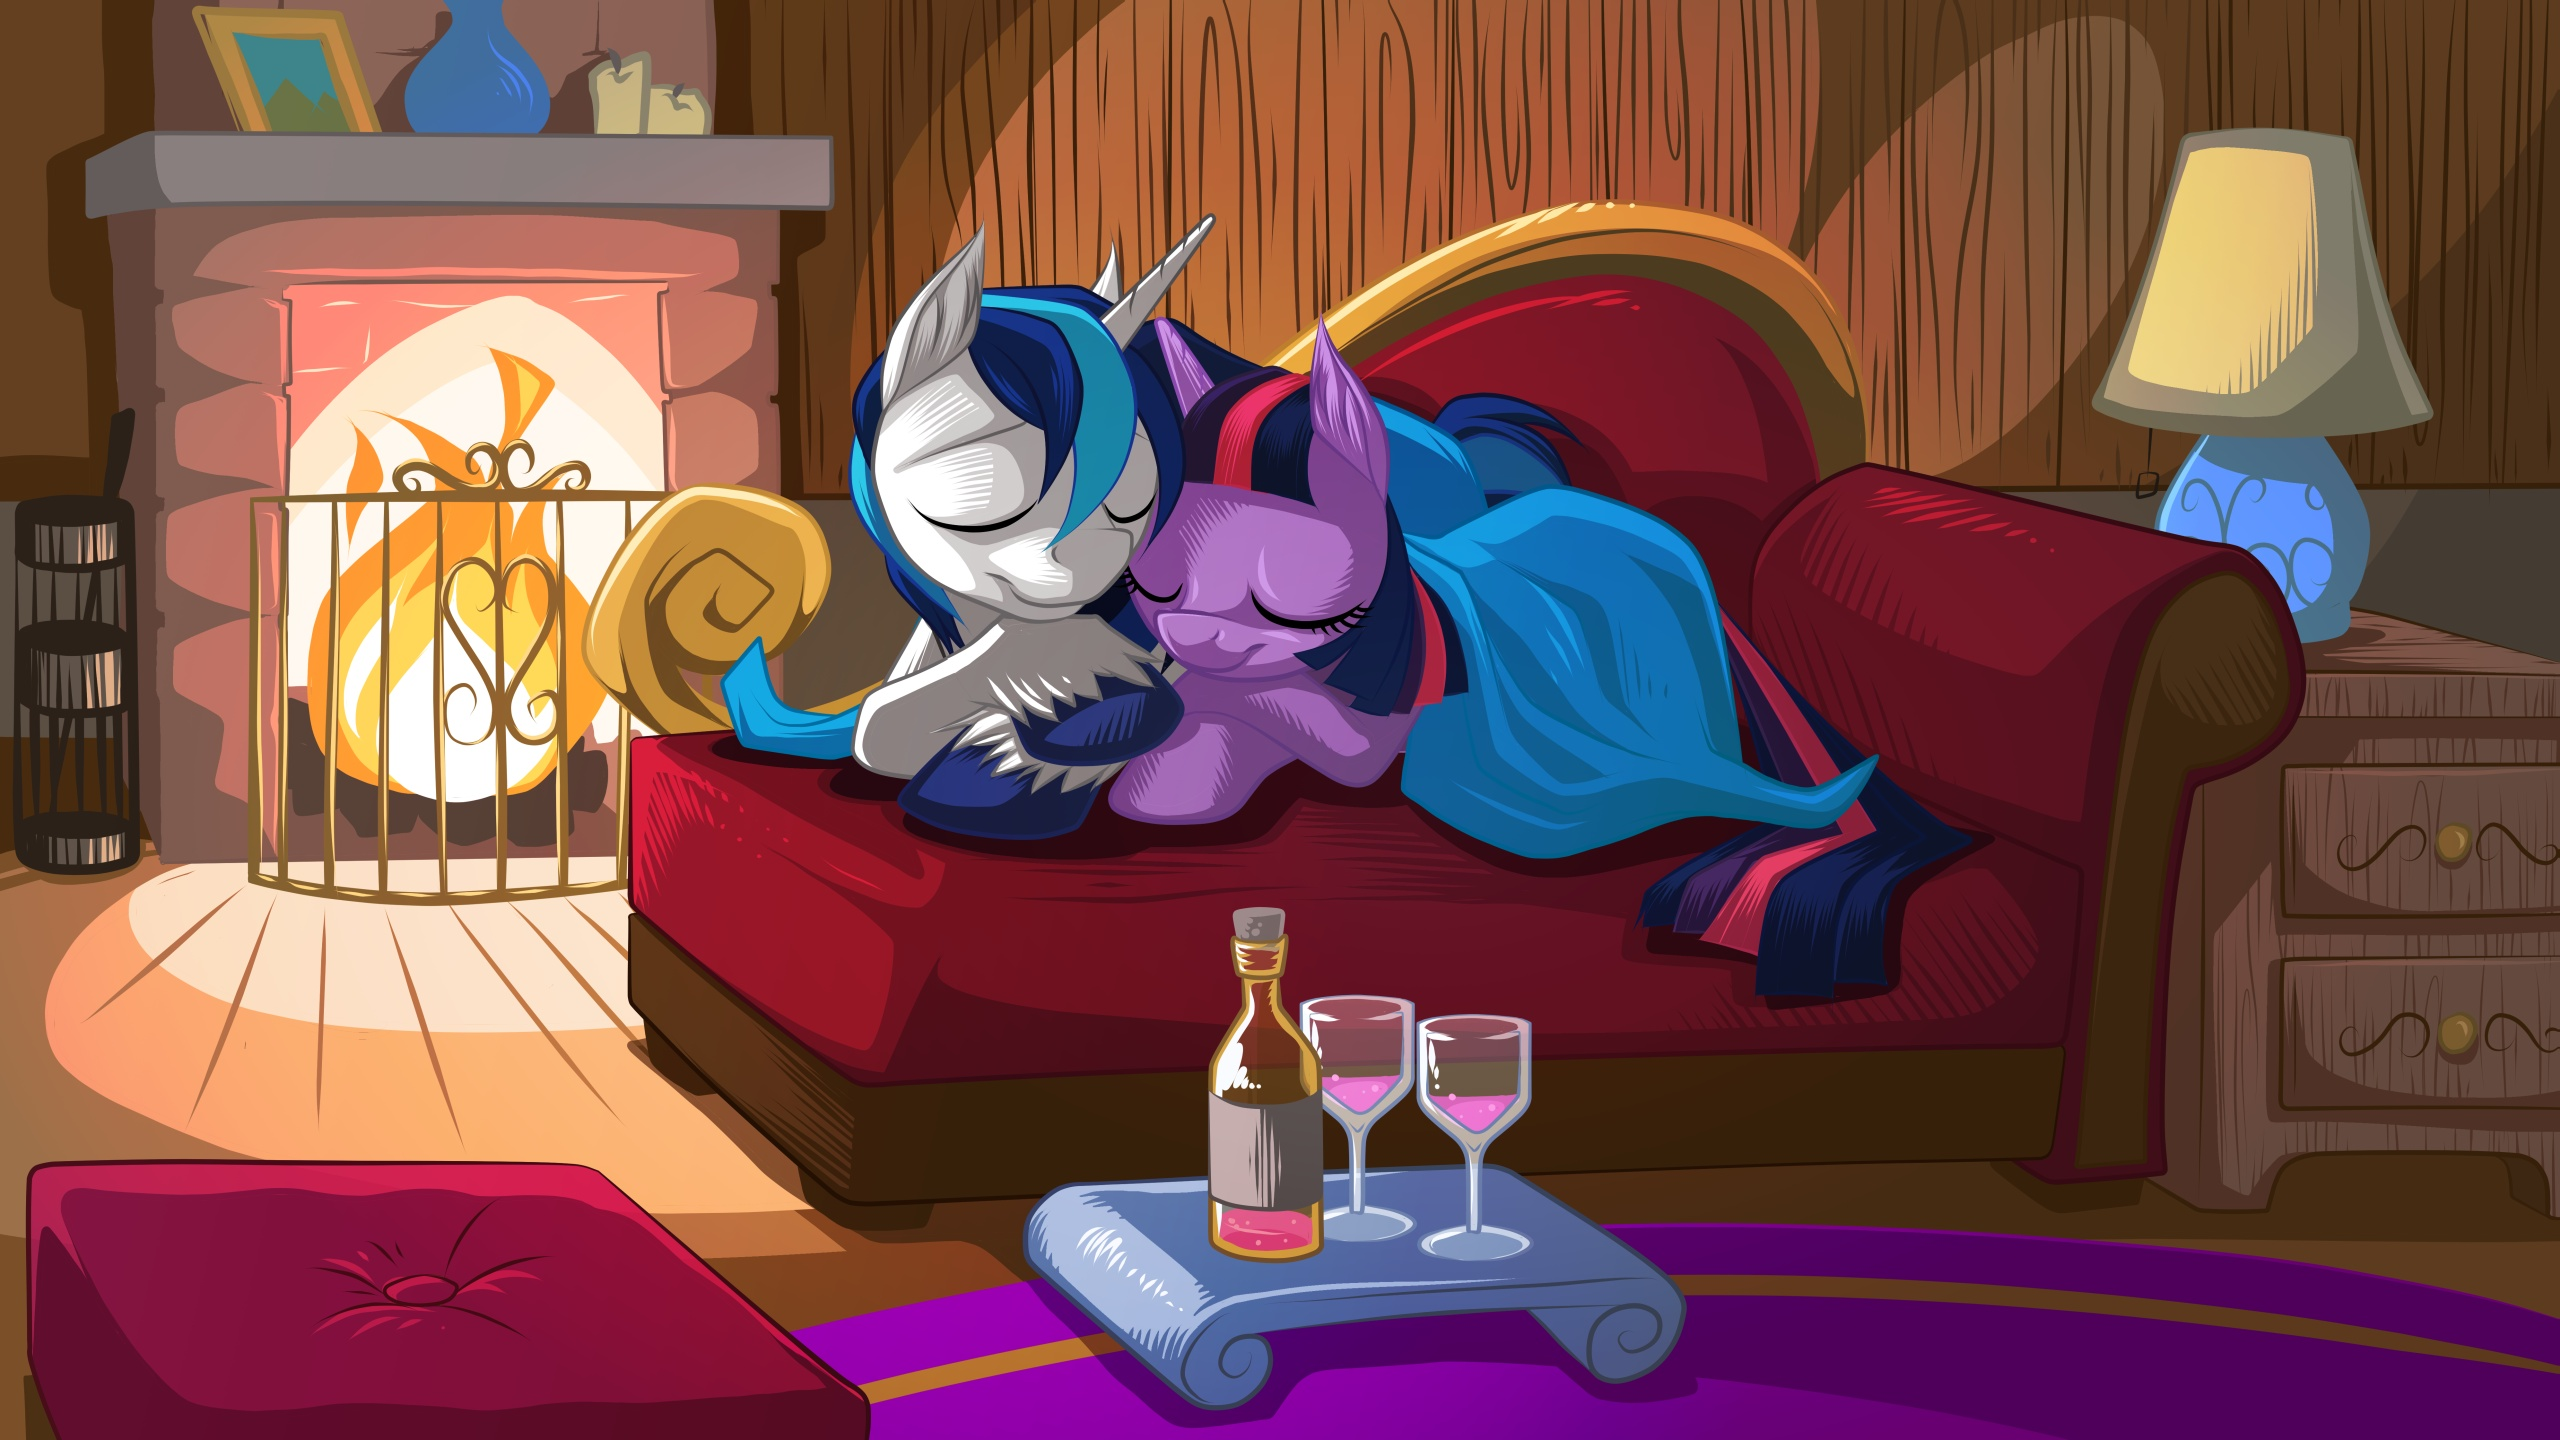 cute pony pictures] Everypony lets post cute pony pictures - Page